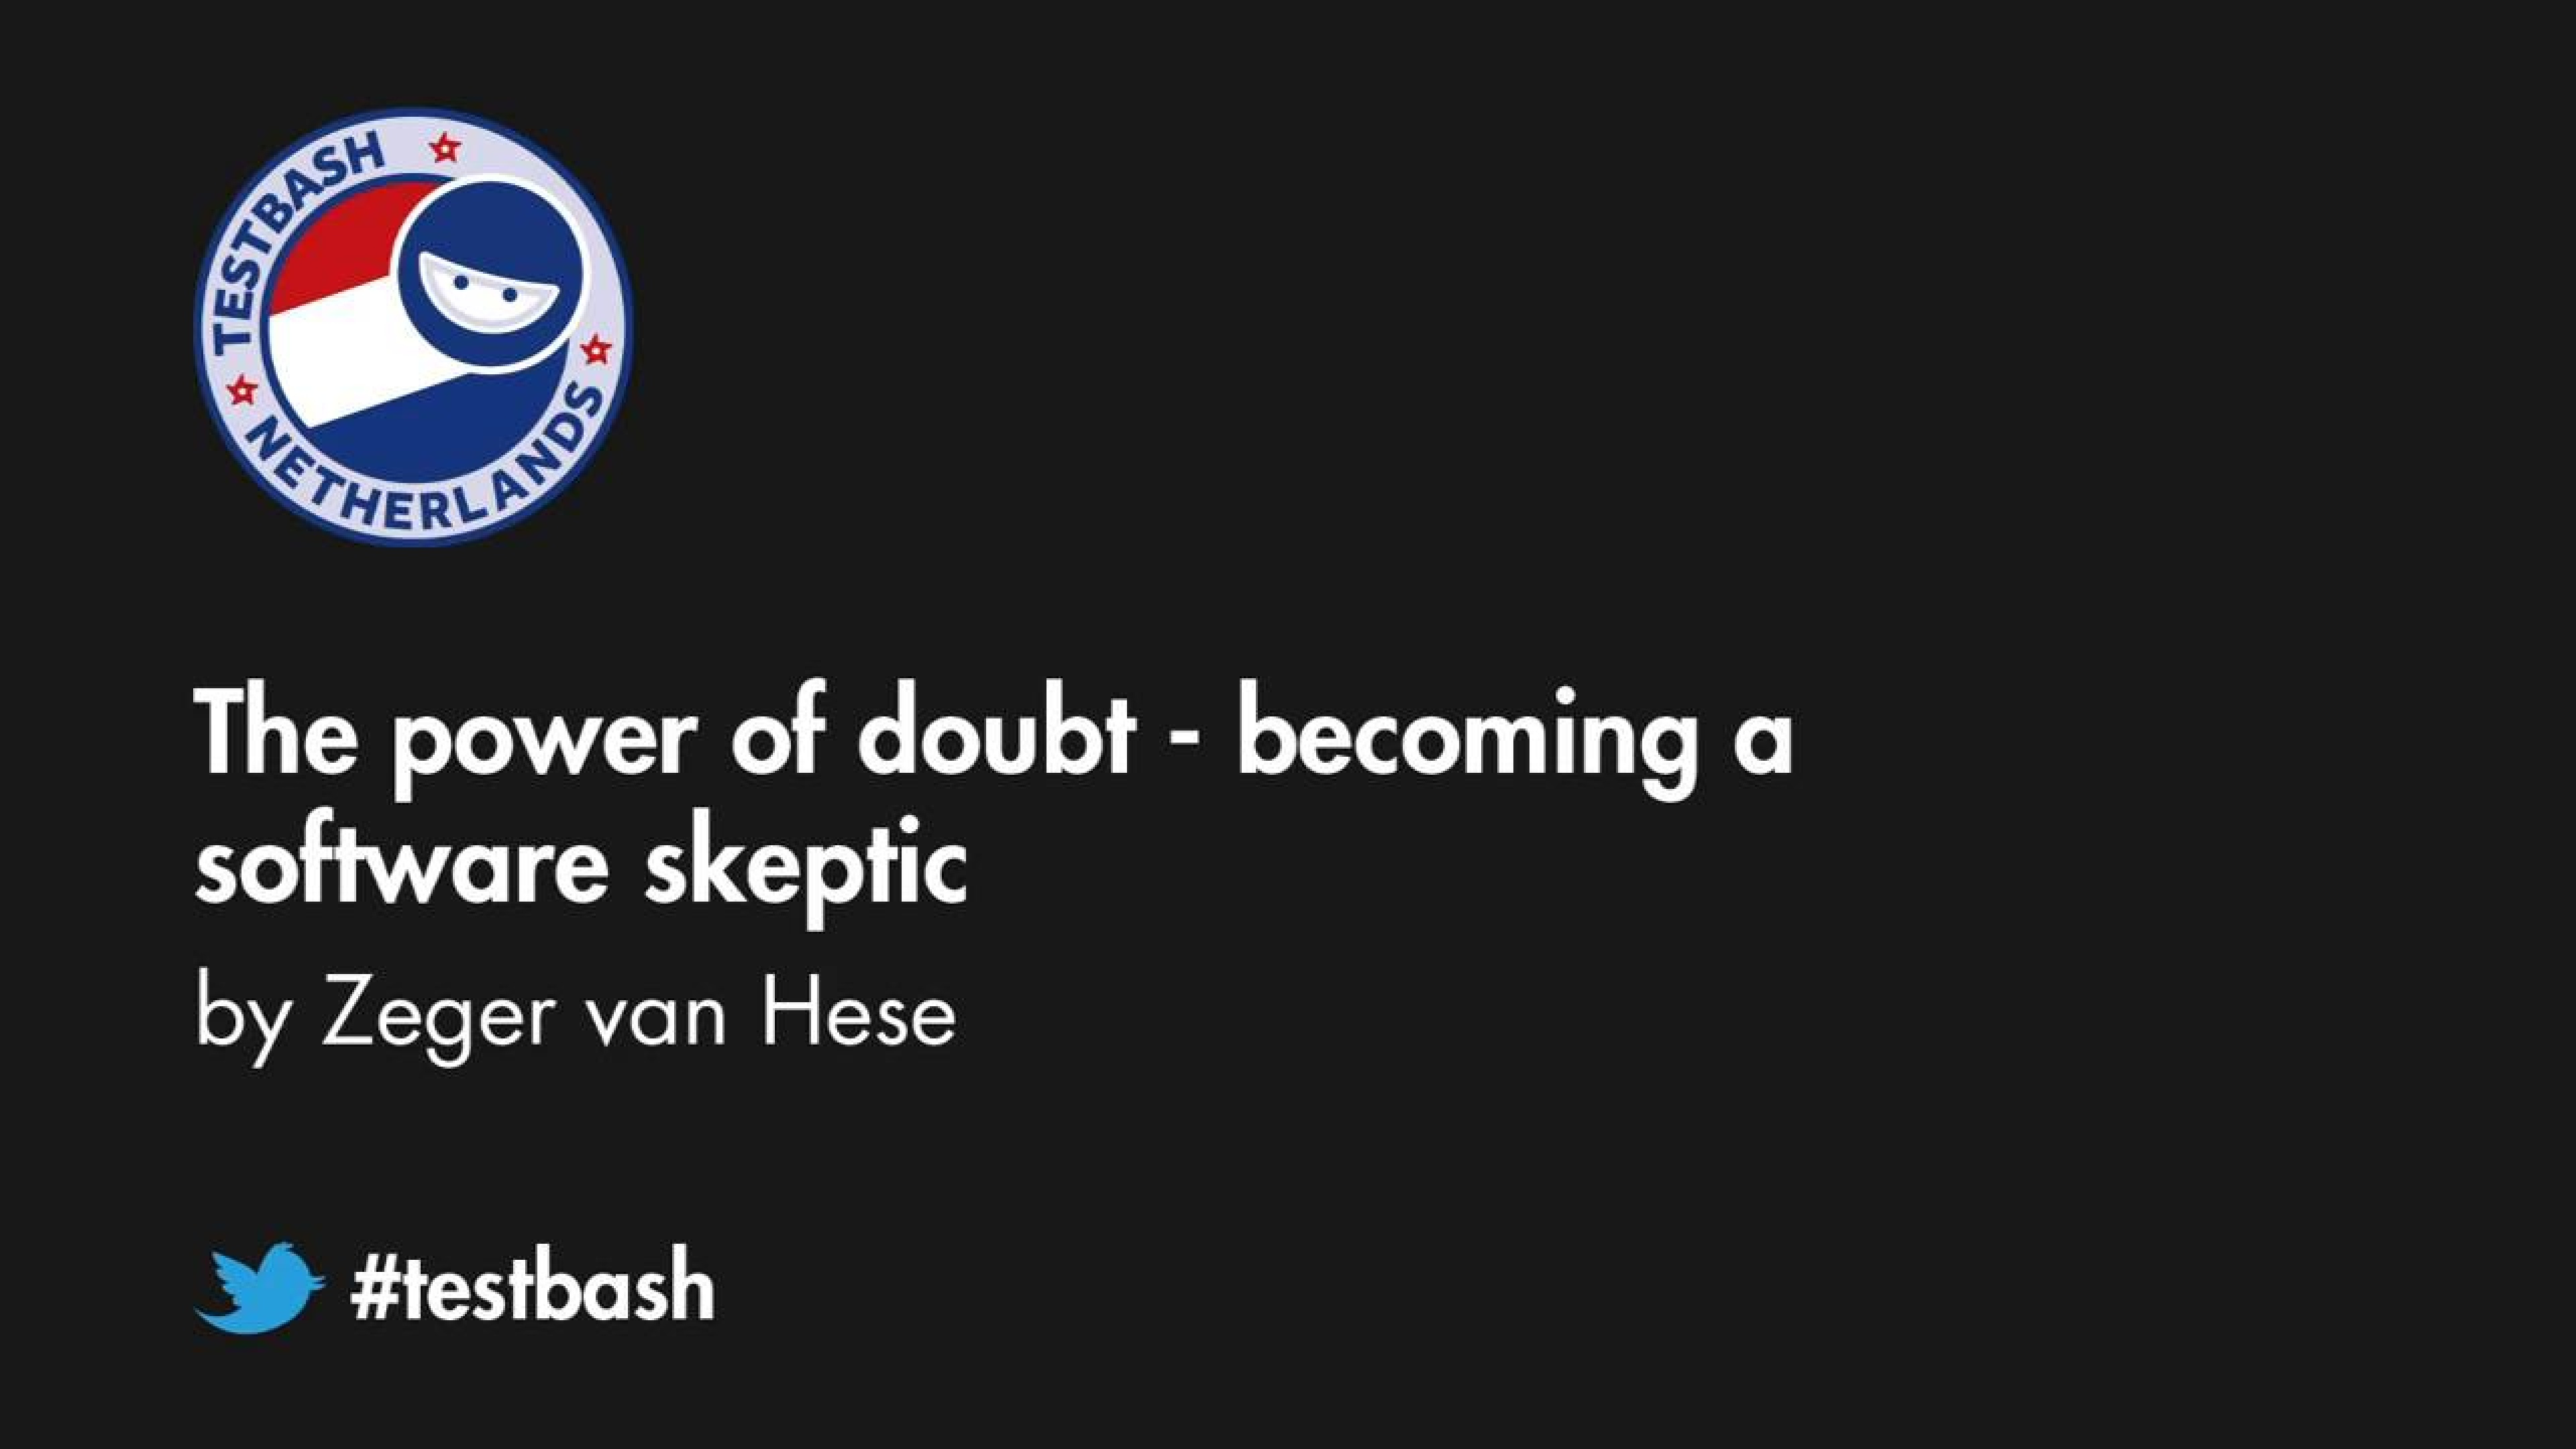 The Power of Doubt - Becoming A Software Skeptic - Zeger Van Hese